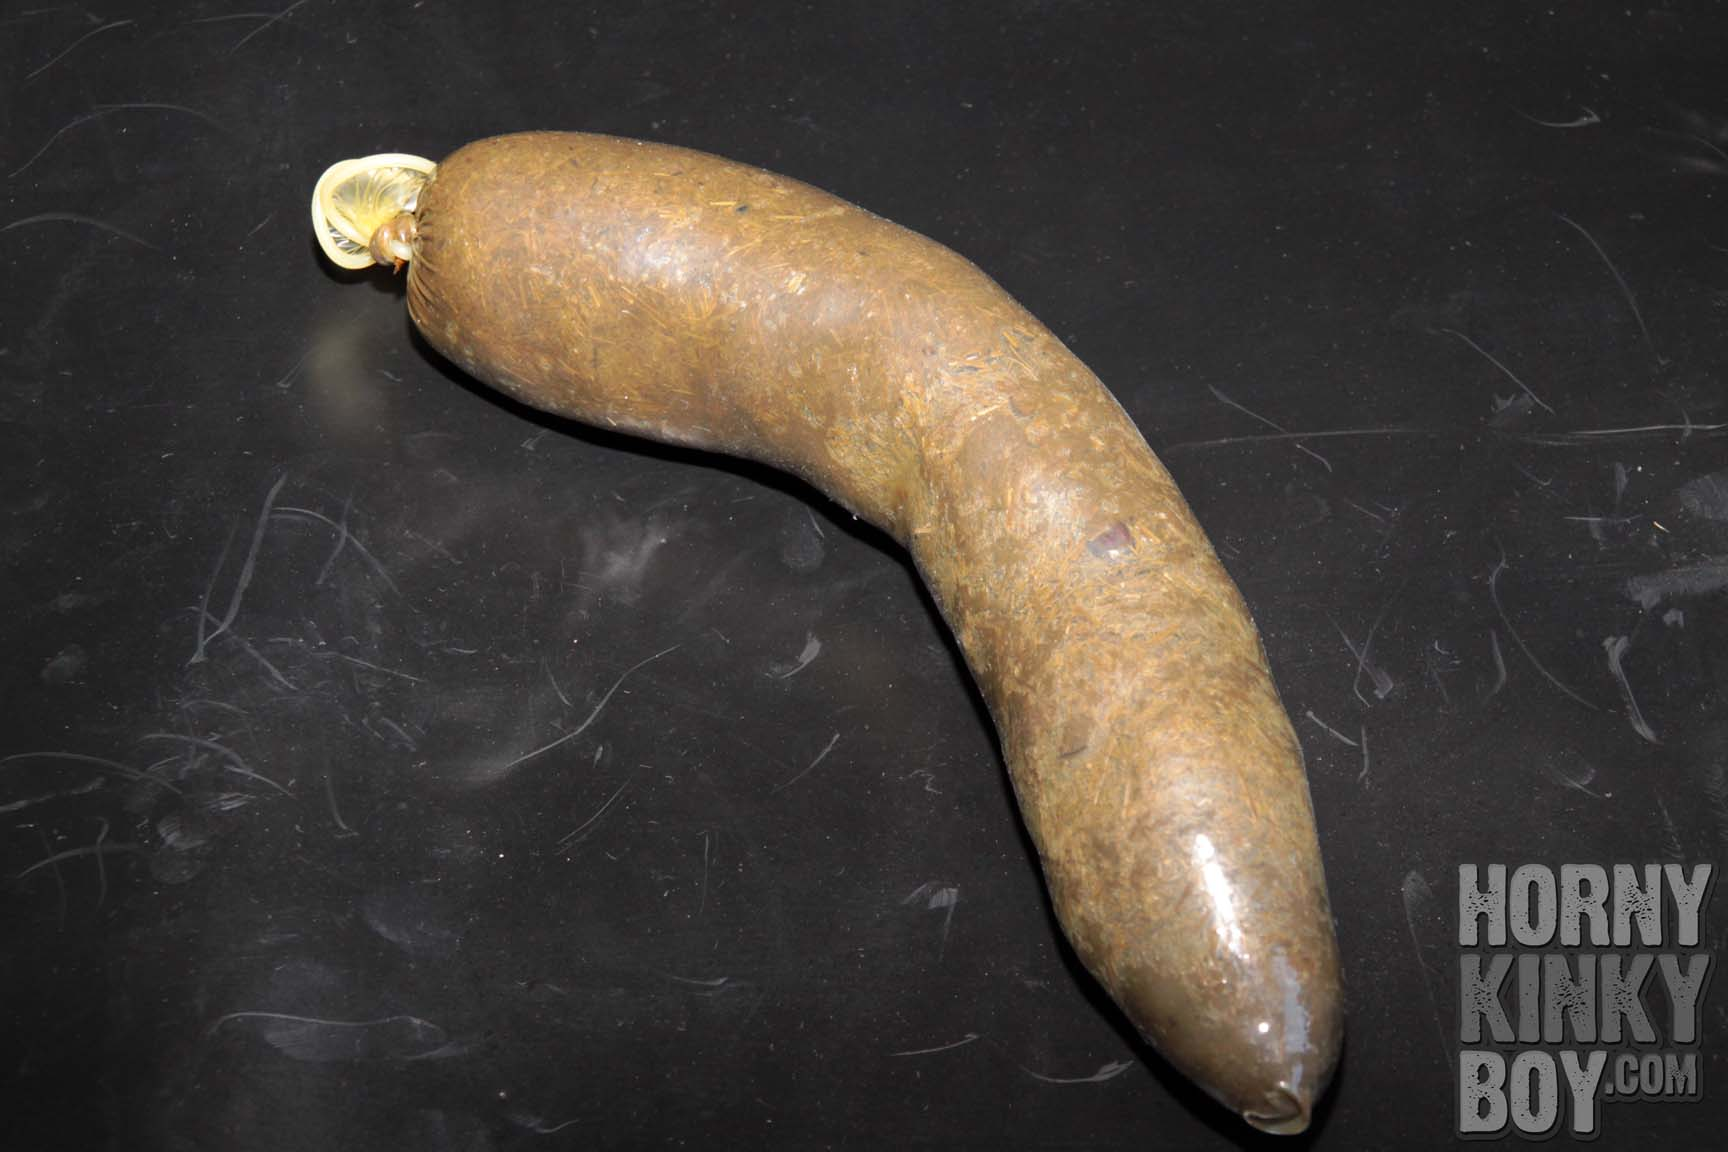 Long Condom Stuffed With Horse Droppings 038